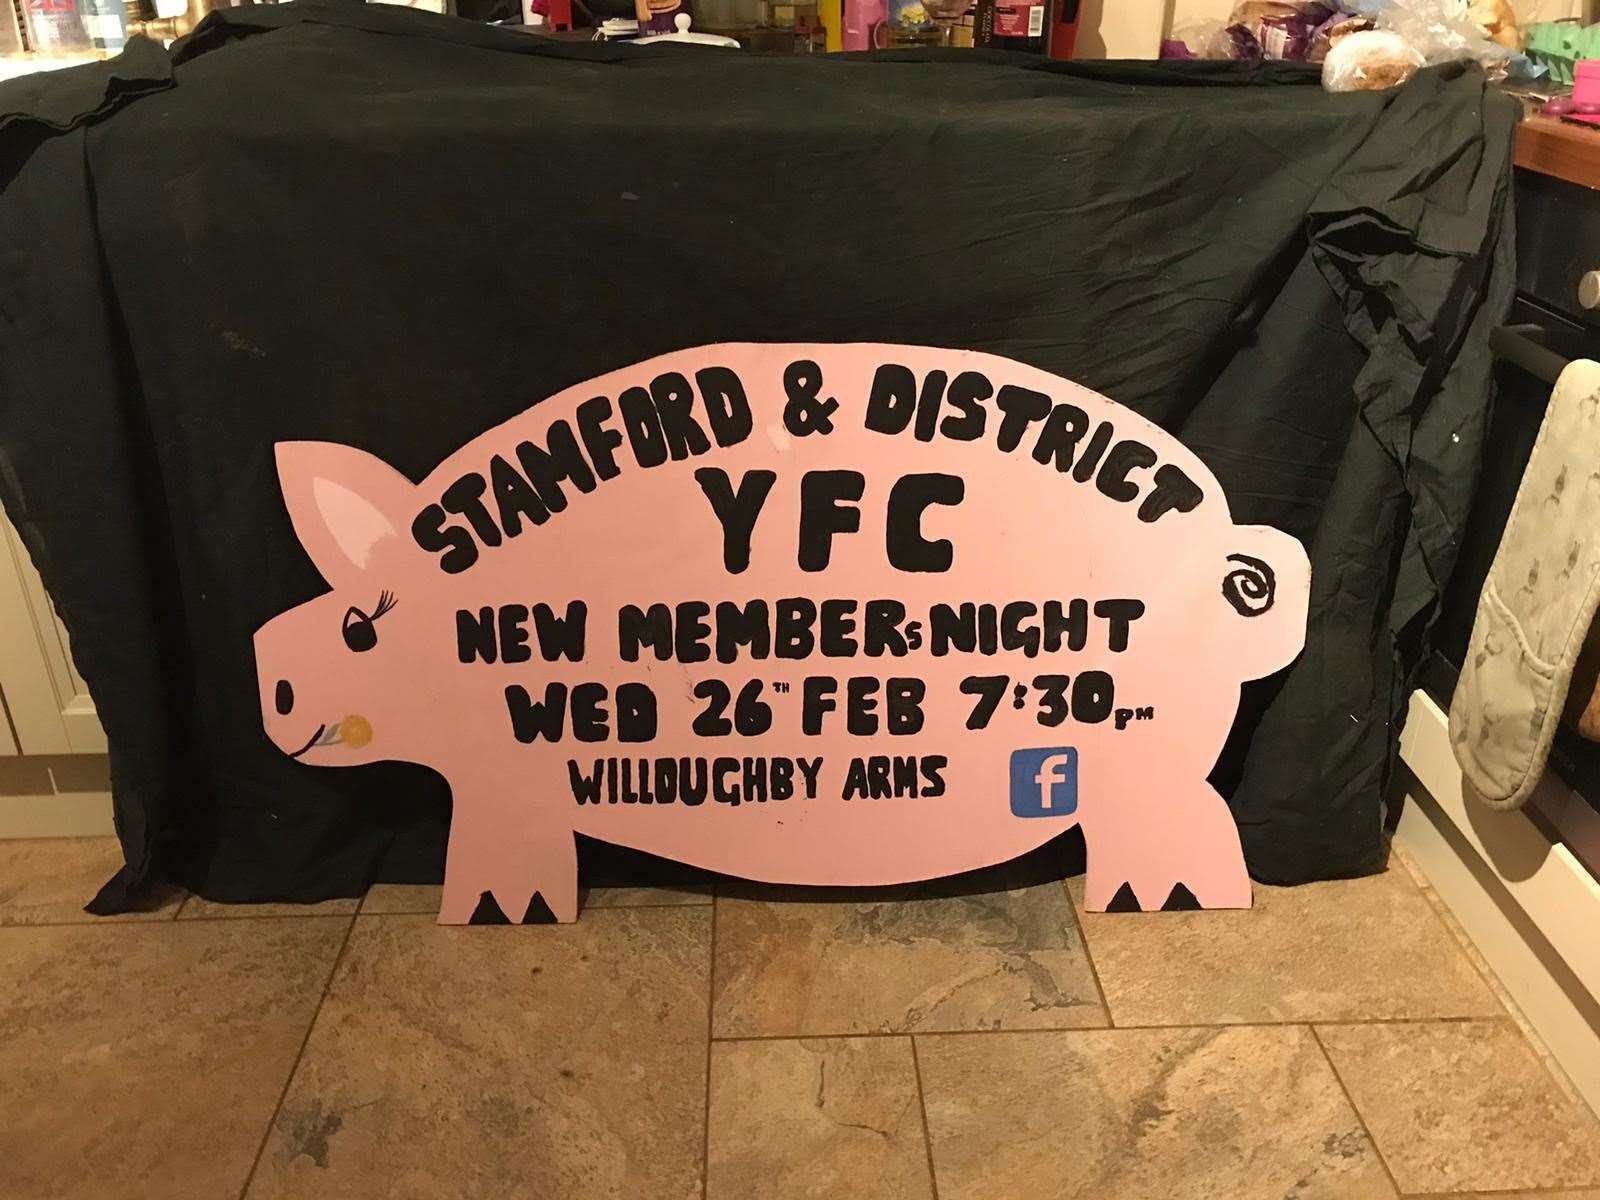 The Stamford and District YFC is advertising its relaunch on plywood pigs. (29116859)